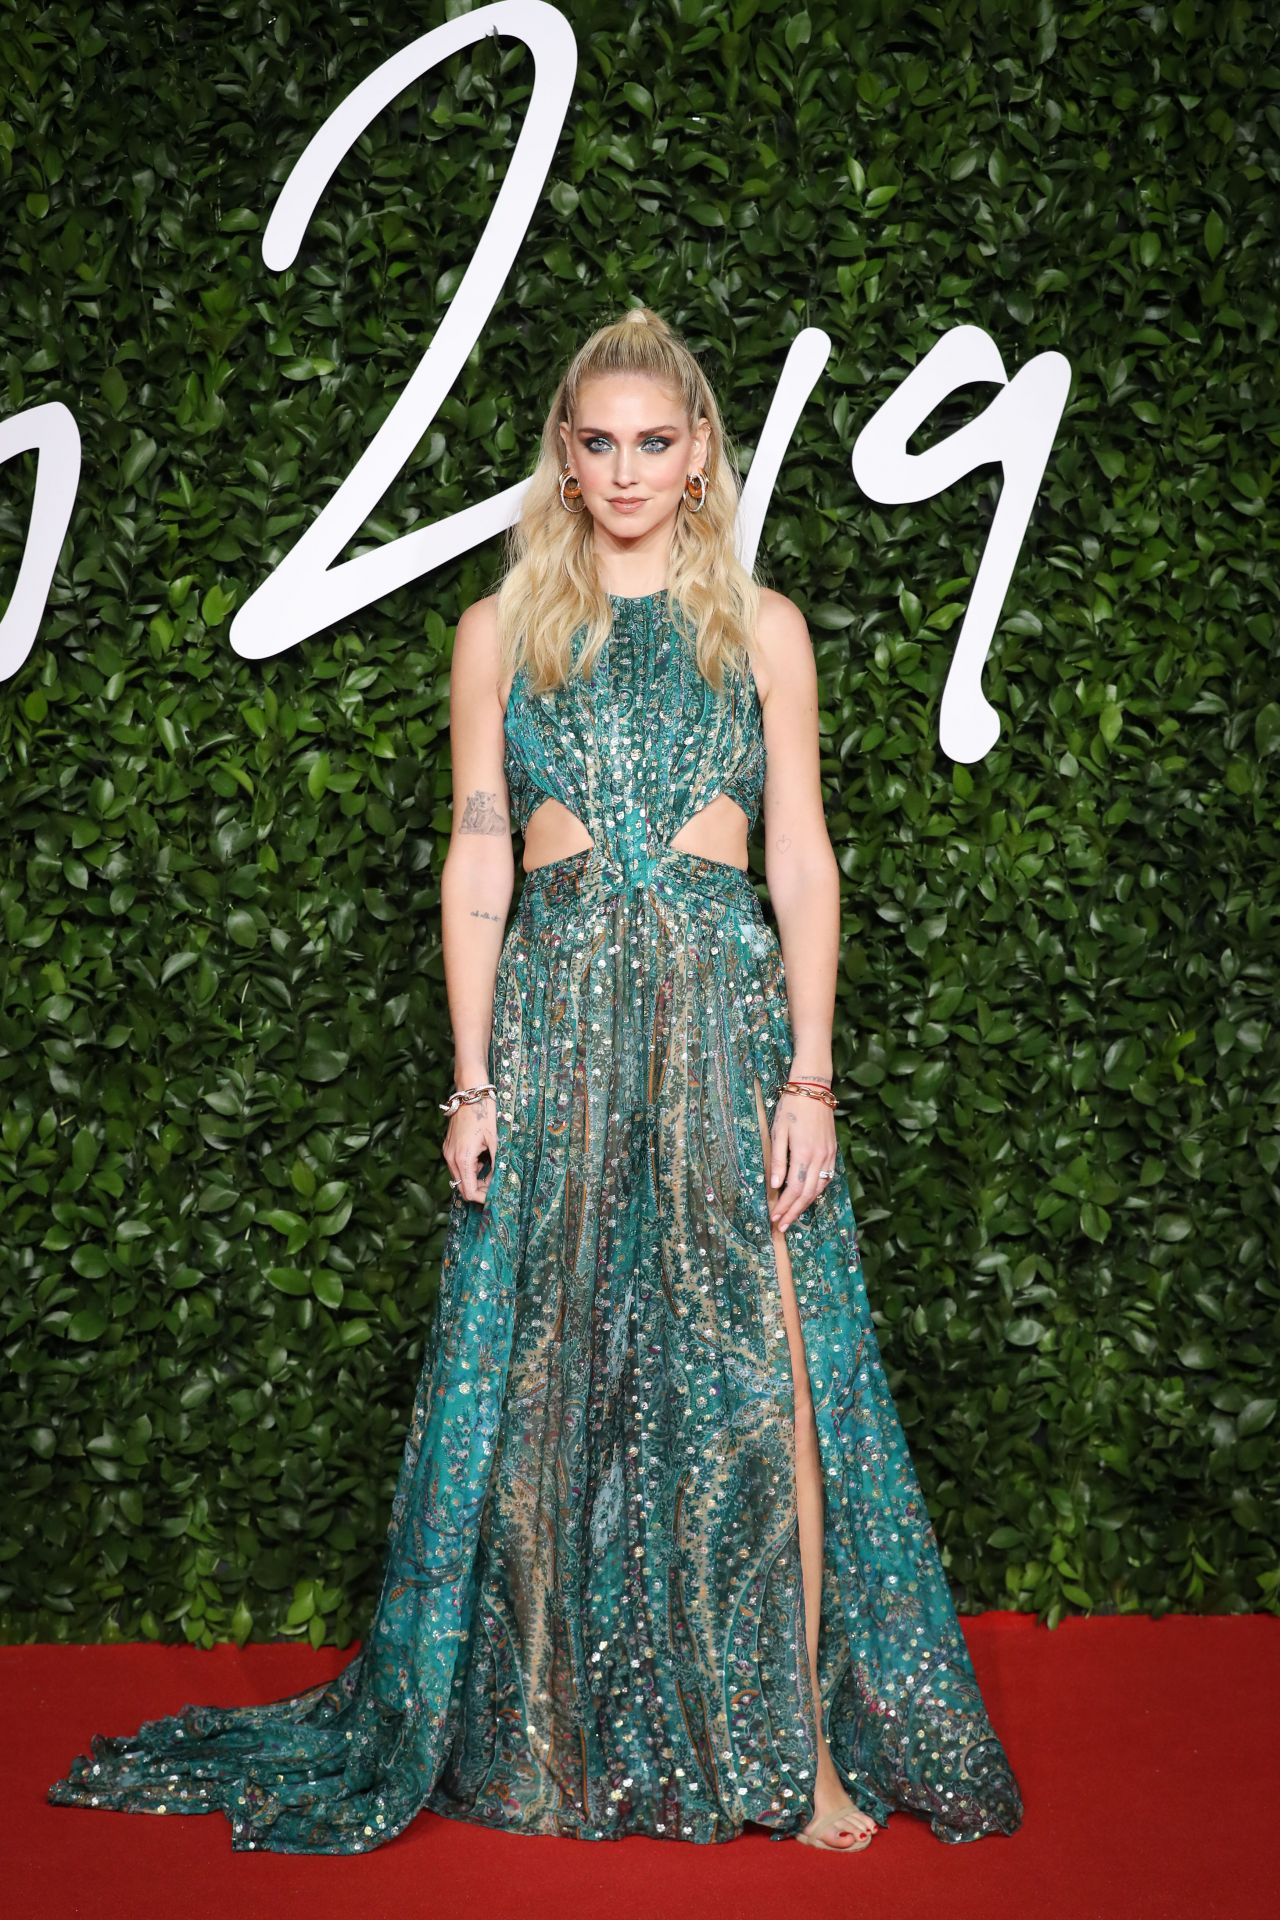 chiara-ferragni-in-etro-2019-british-the-fashion-awards